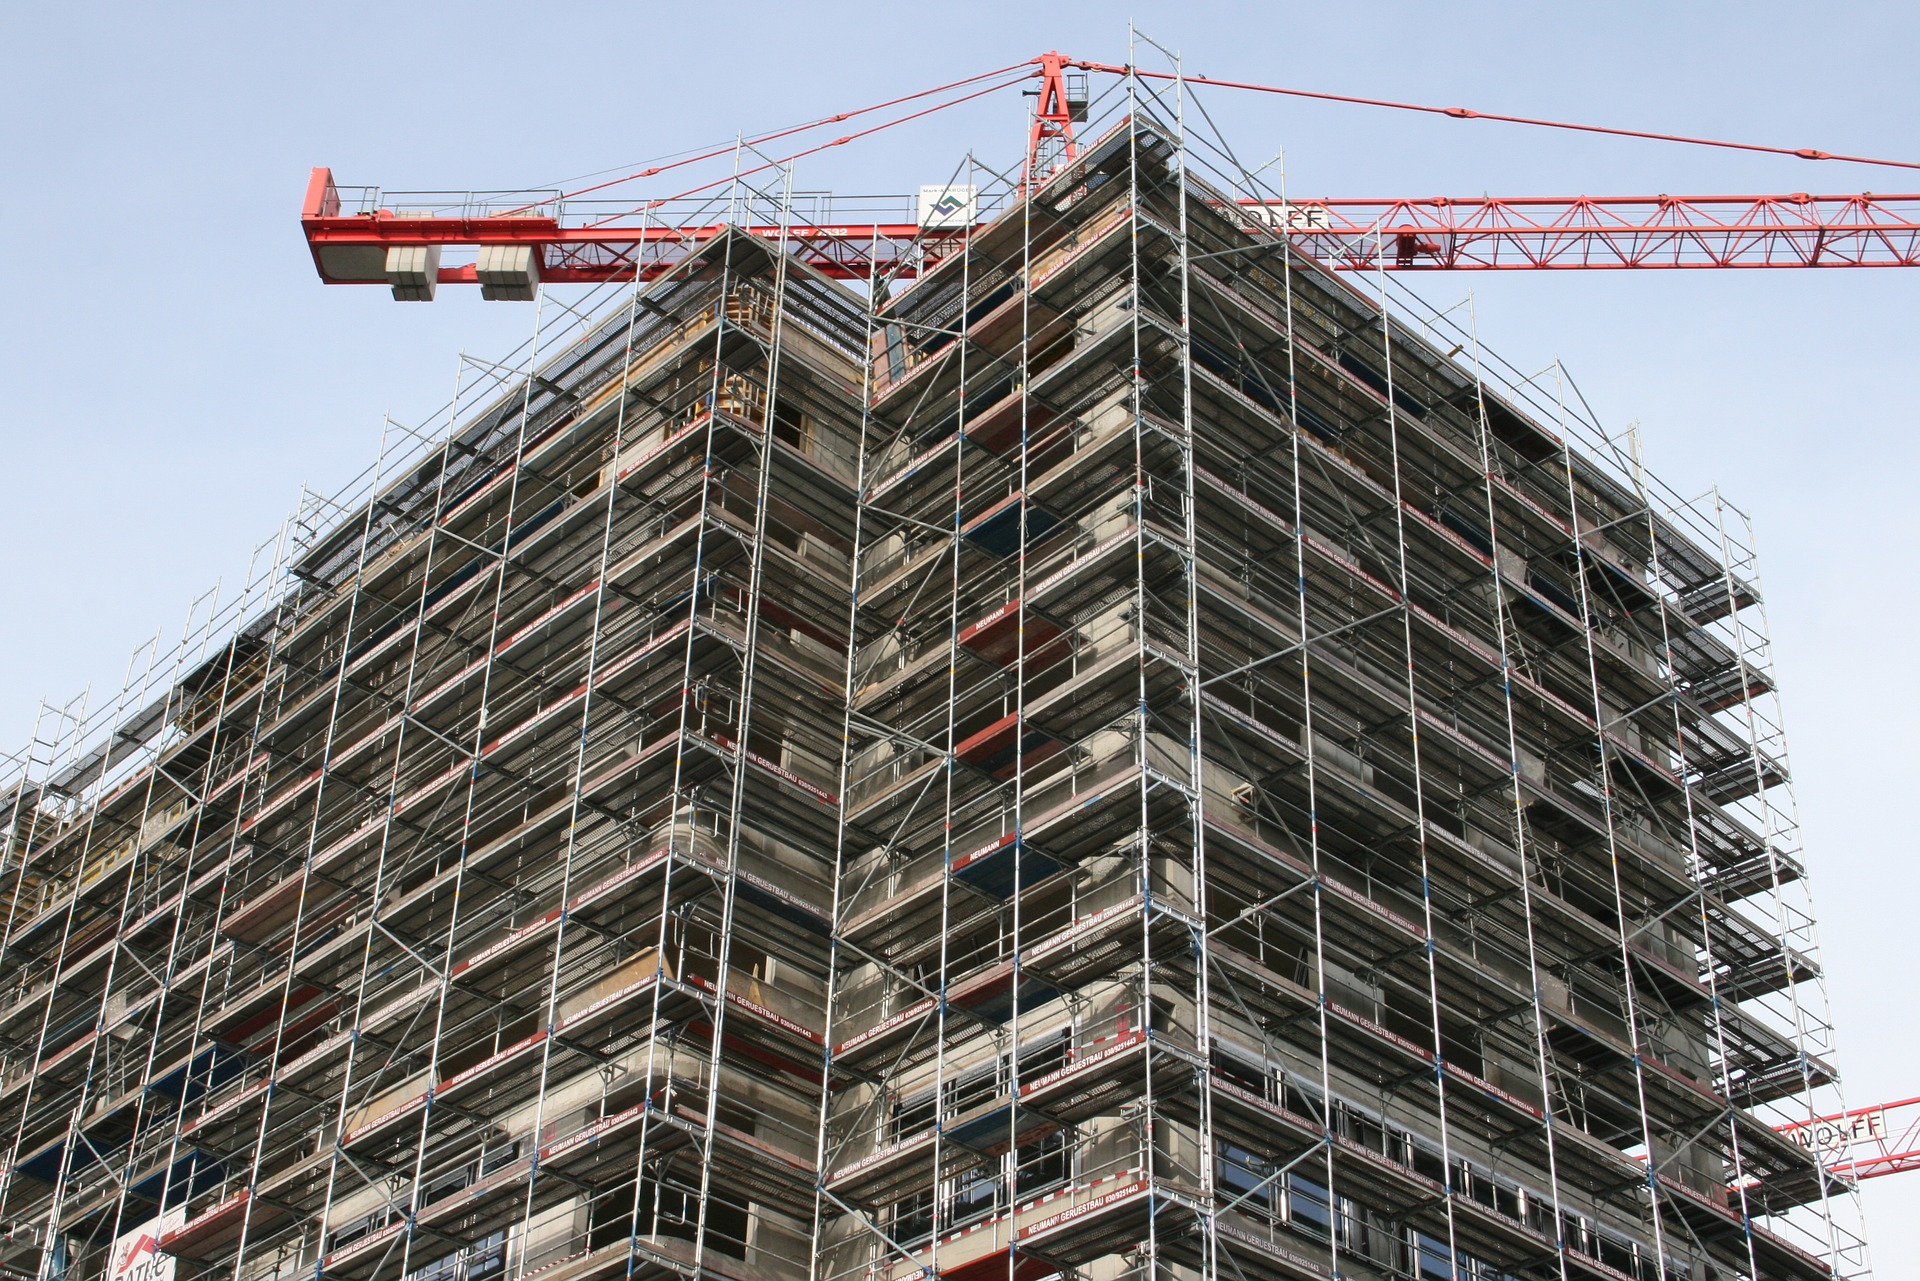 Scaffold in a building being constructed